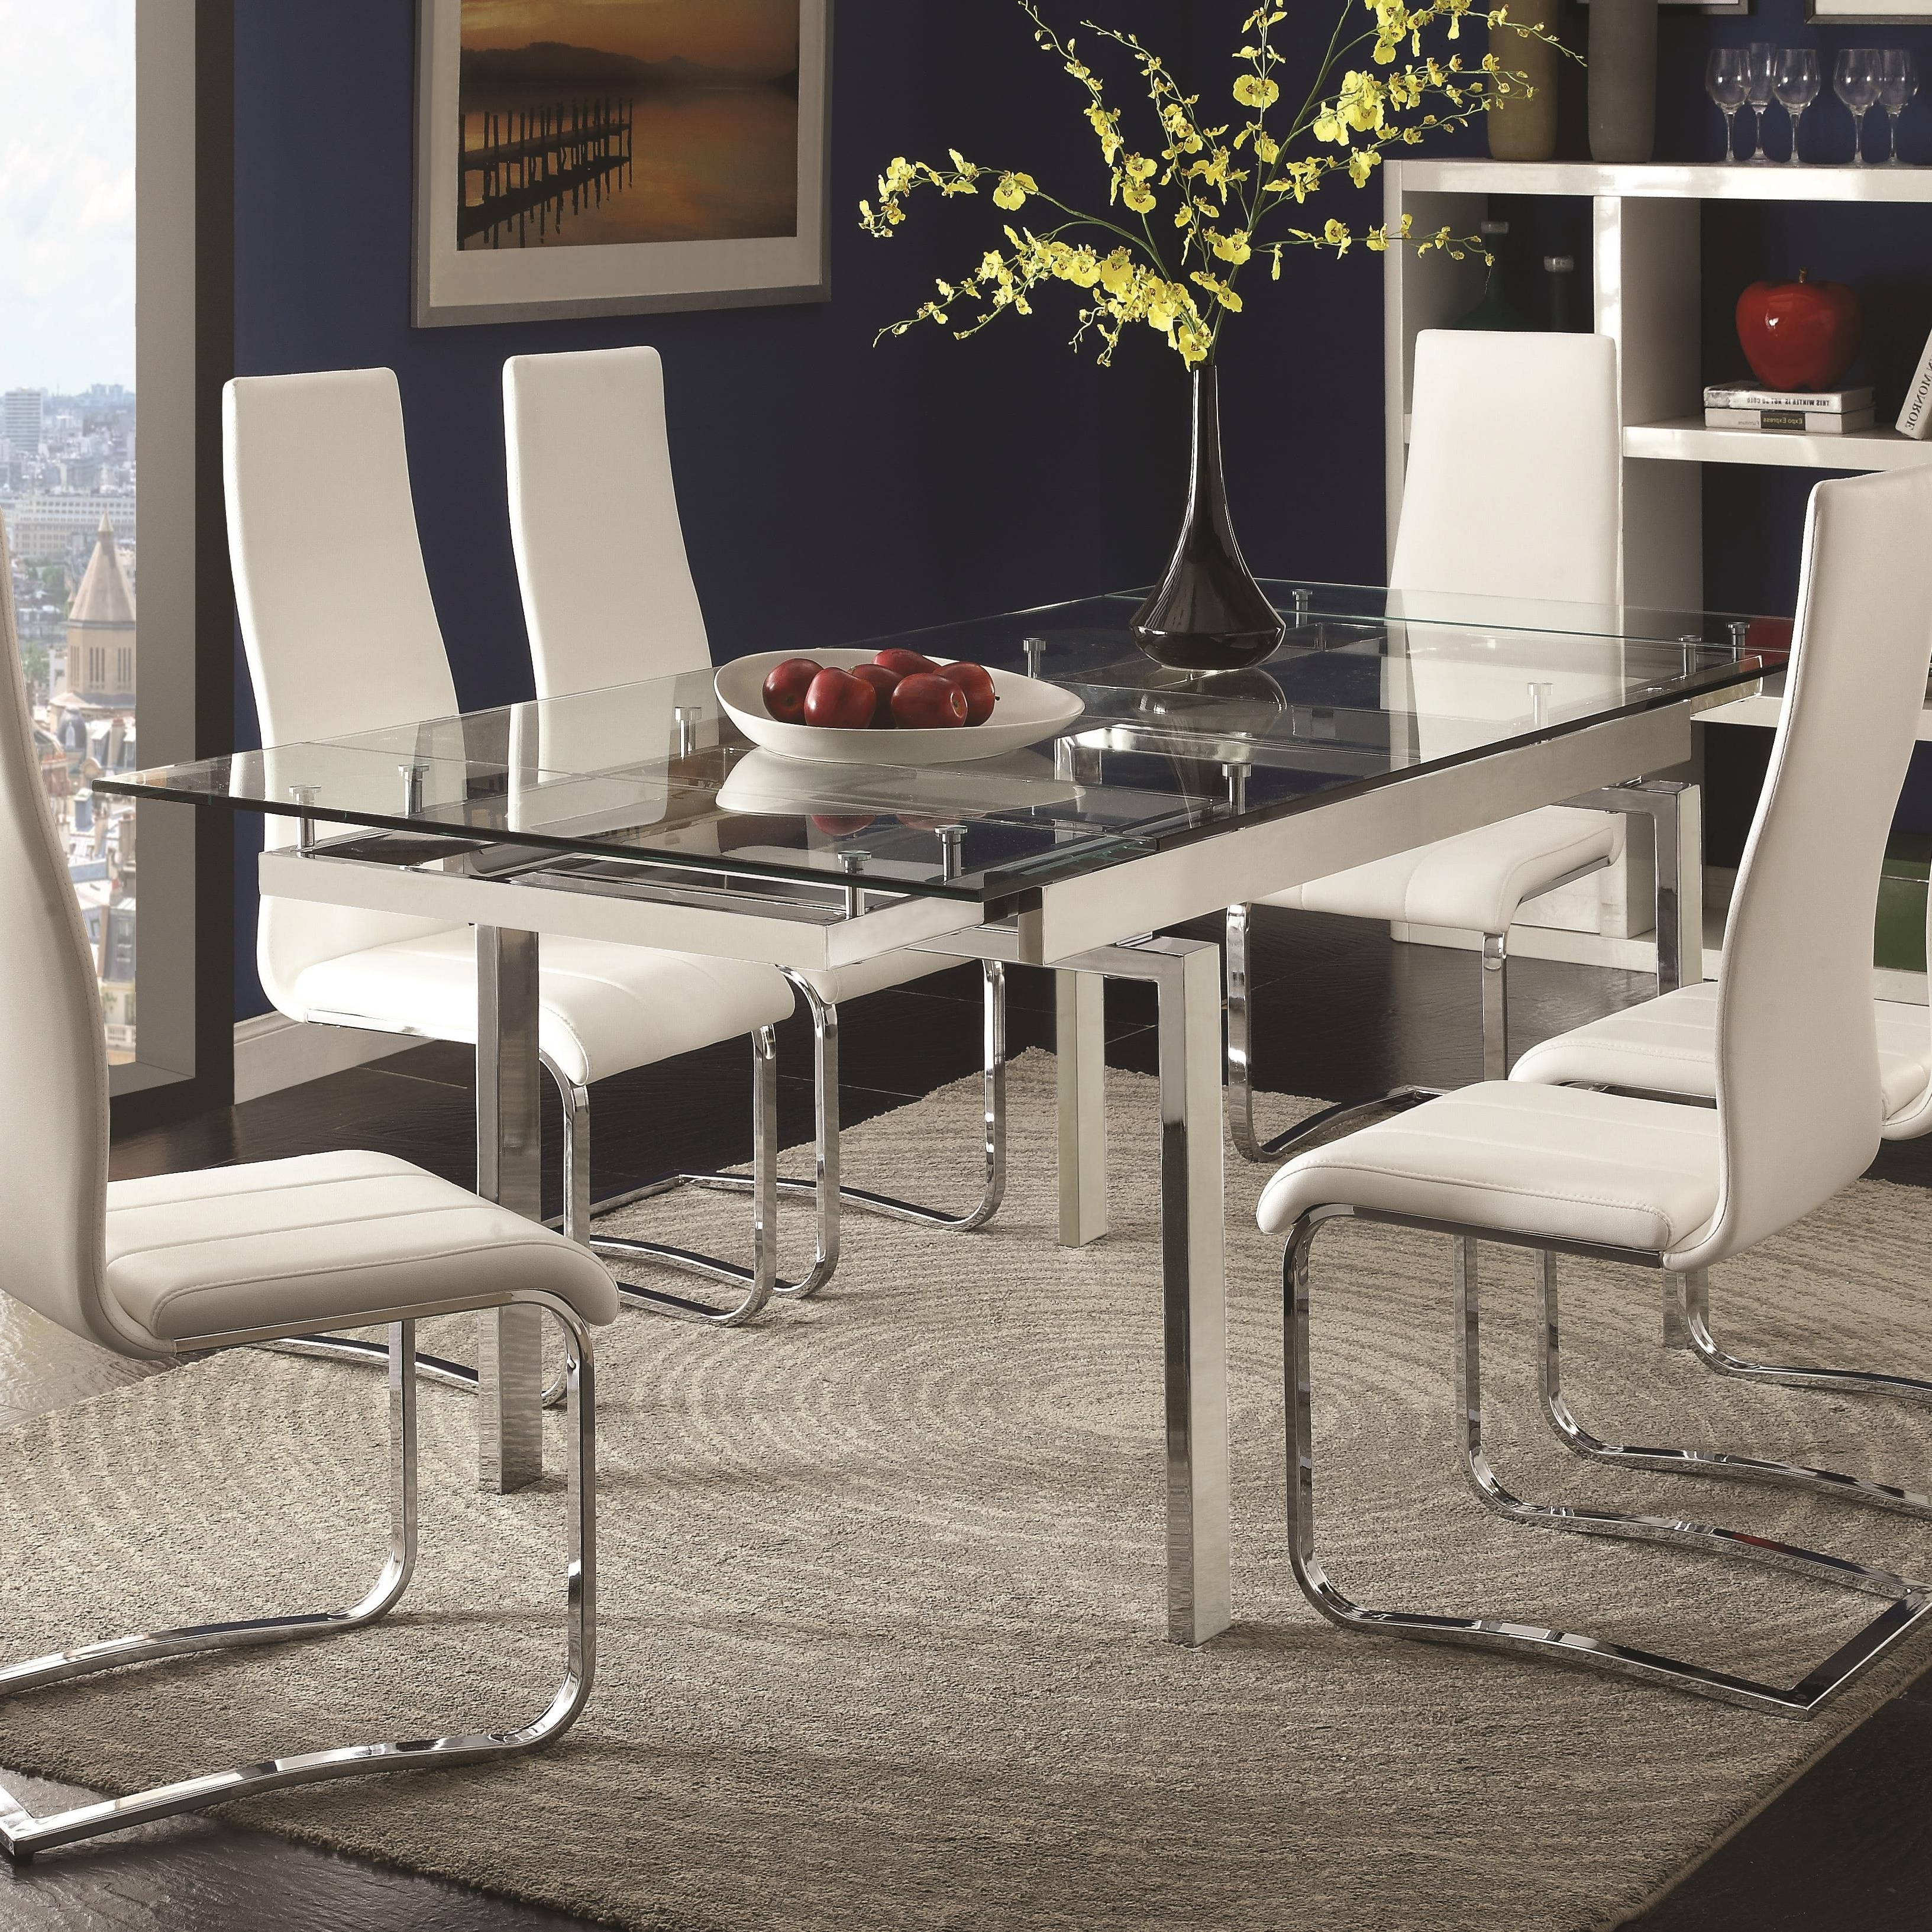 Modern Dining Room Furniture Intended For Best And Newest Coaster Modern Dining Contemporary Glass Dining Table With Leaves (View 8 of 25)